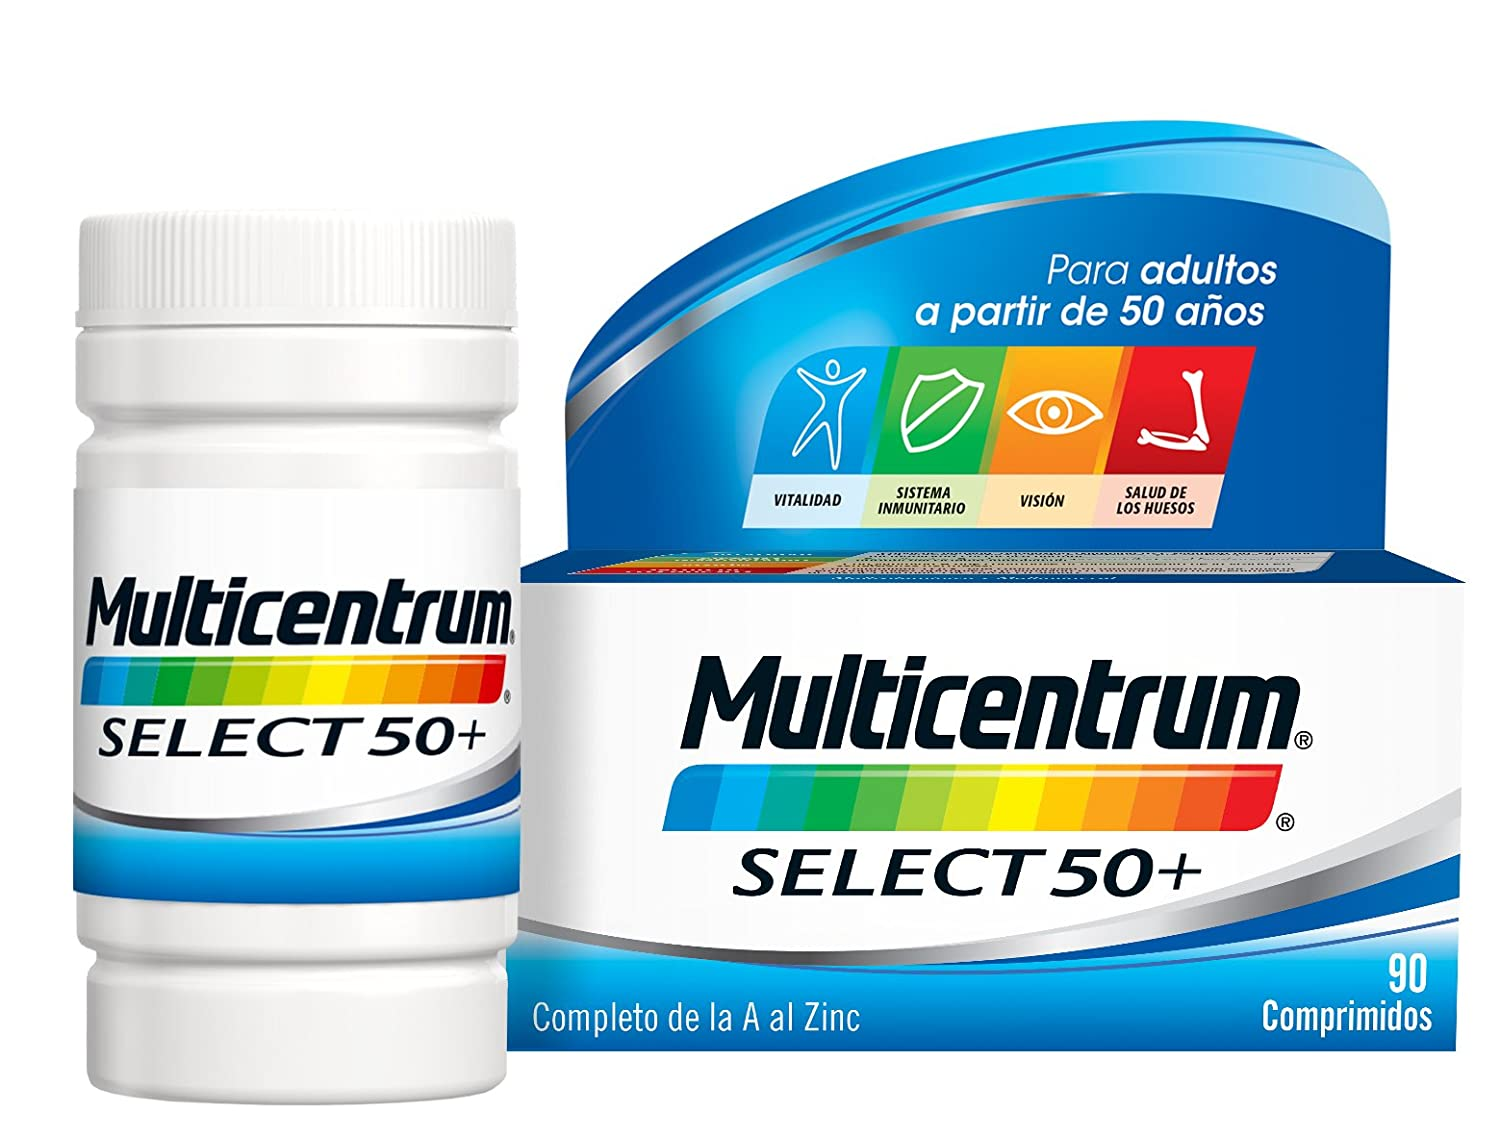 Multicentrum Select 50+ - 90 comprimidos: Amazon.es: Salud y cuidado personal